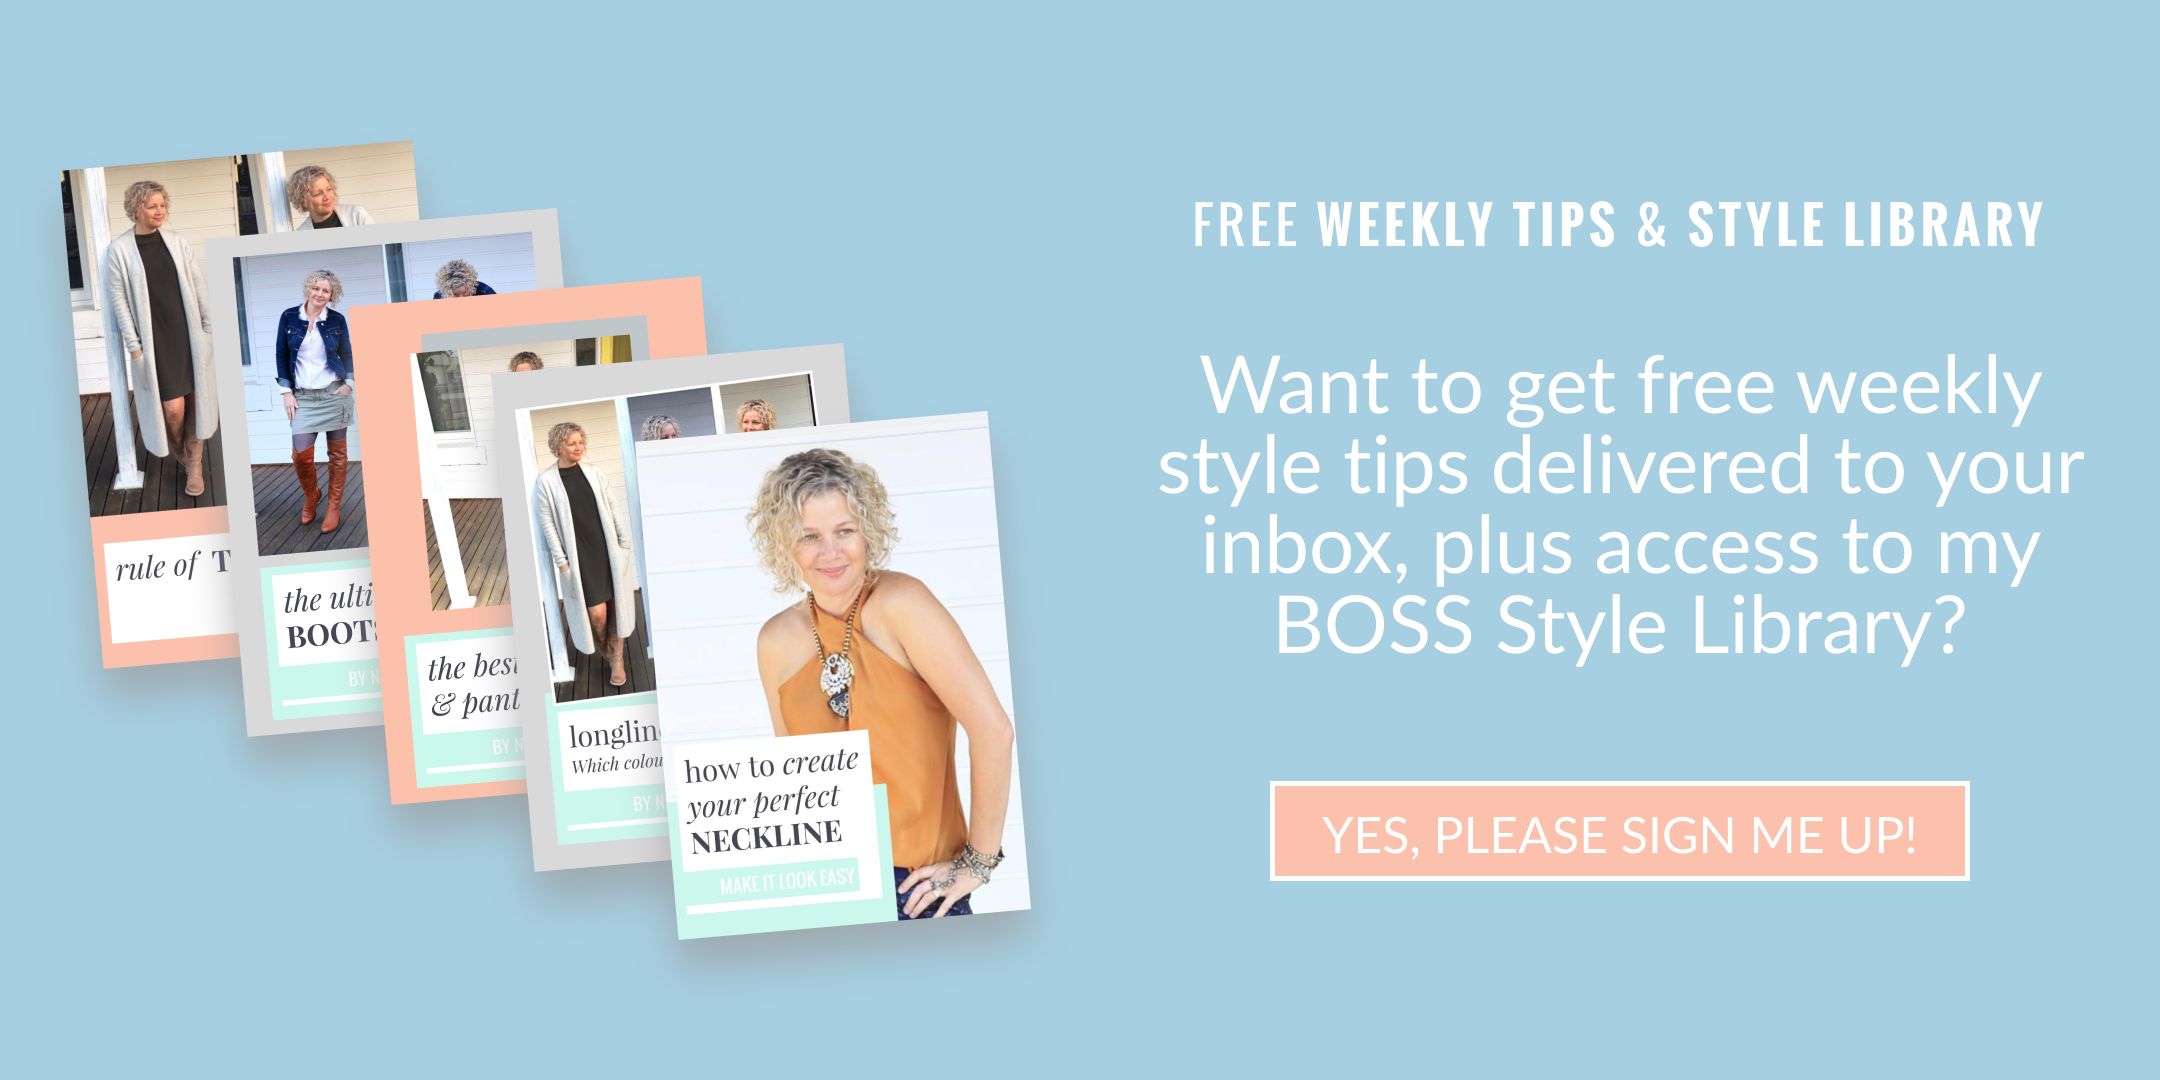 Click here to receive weekly style tips and access to my style library.